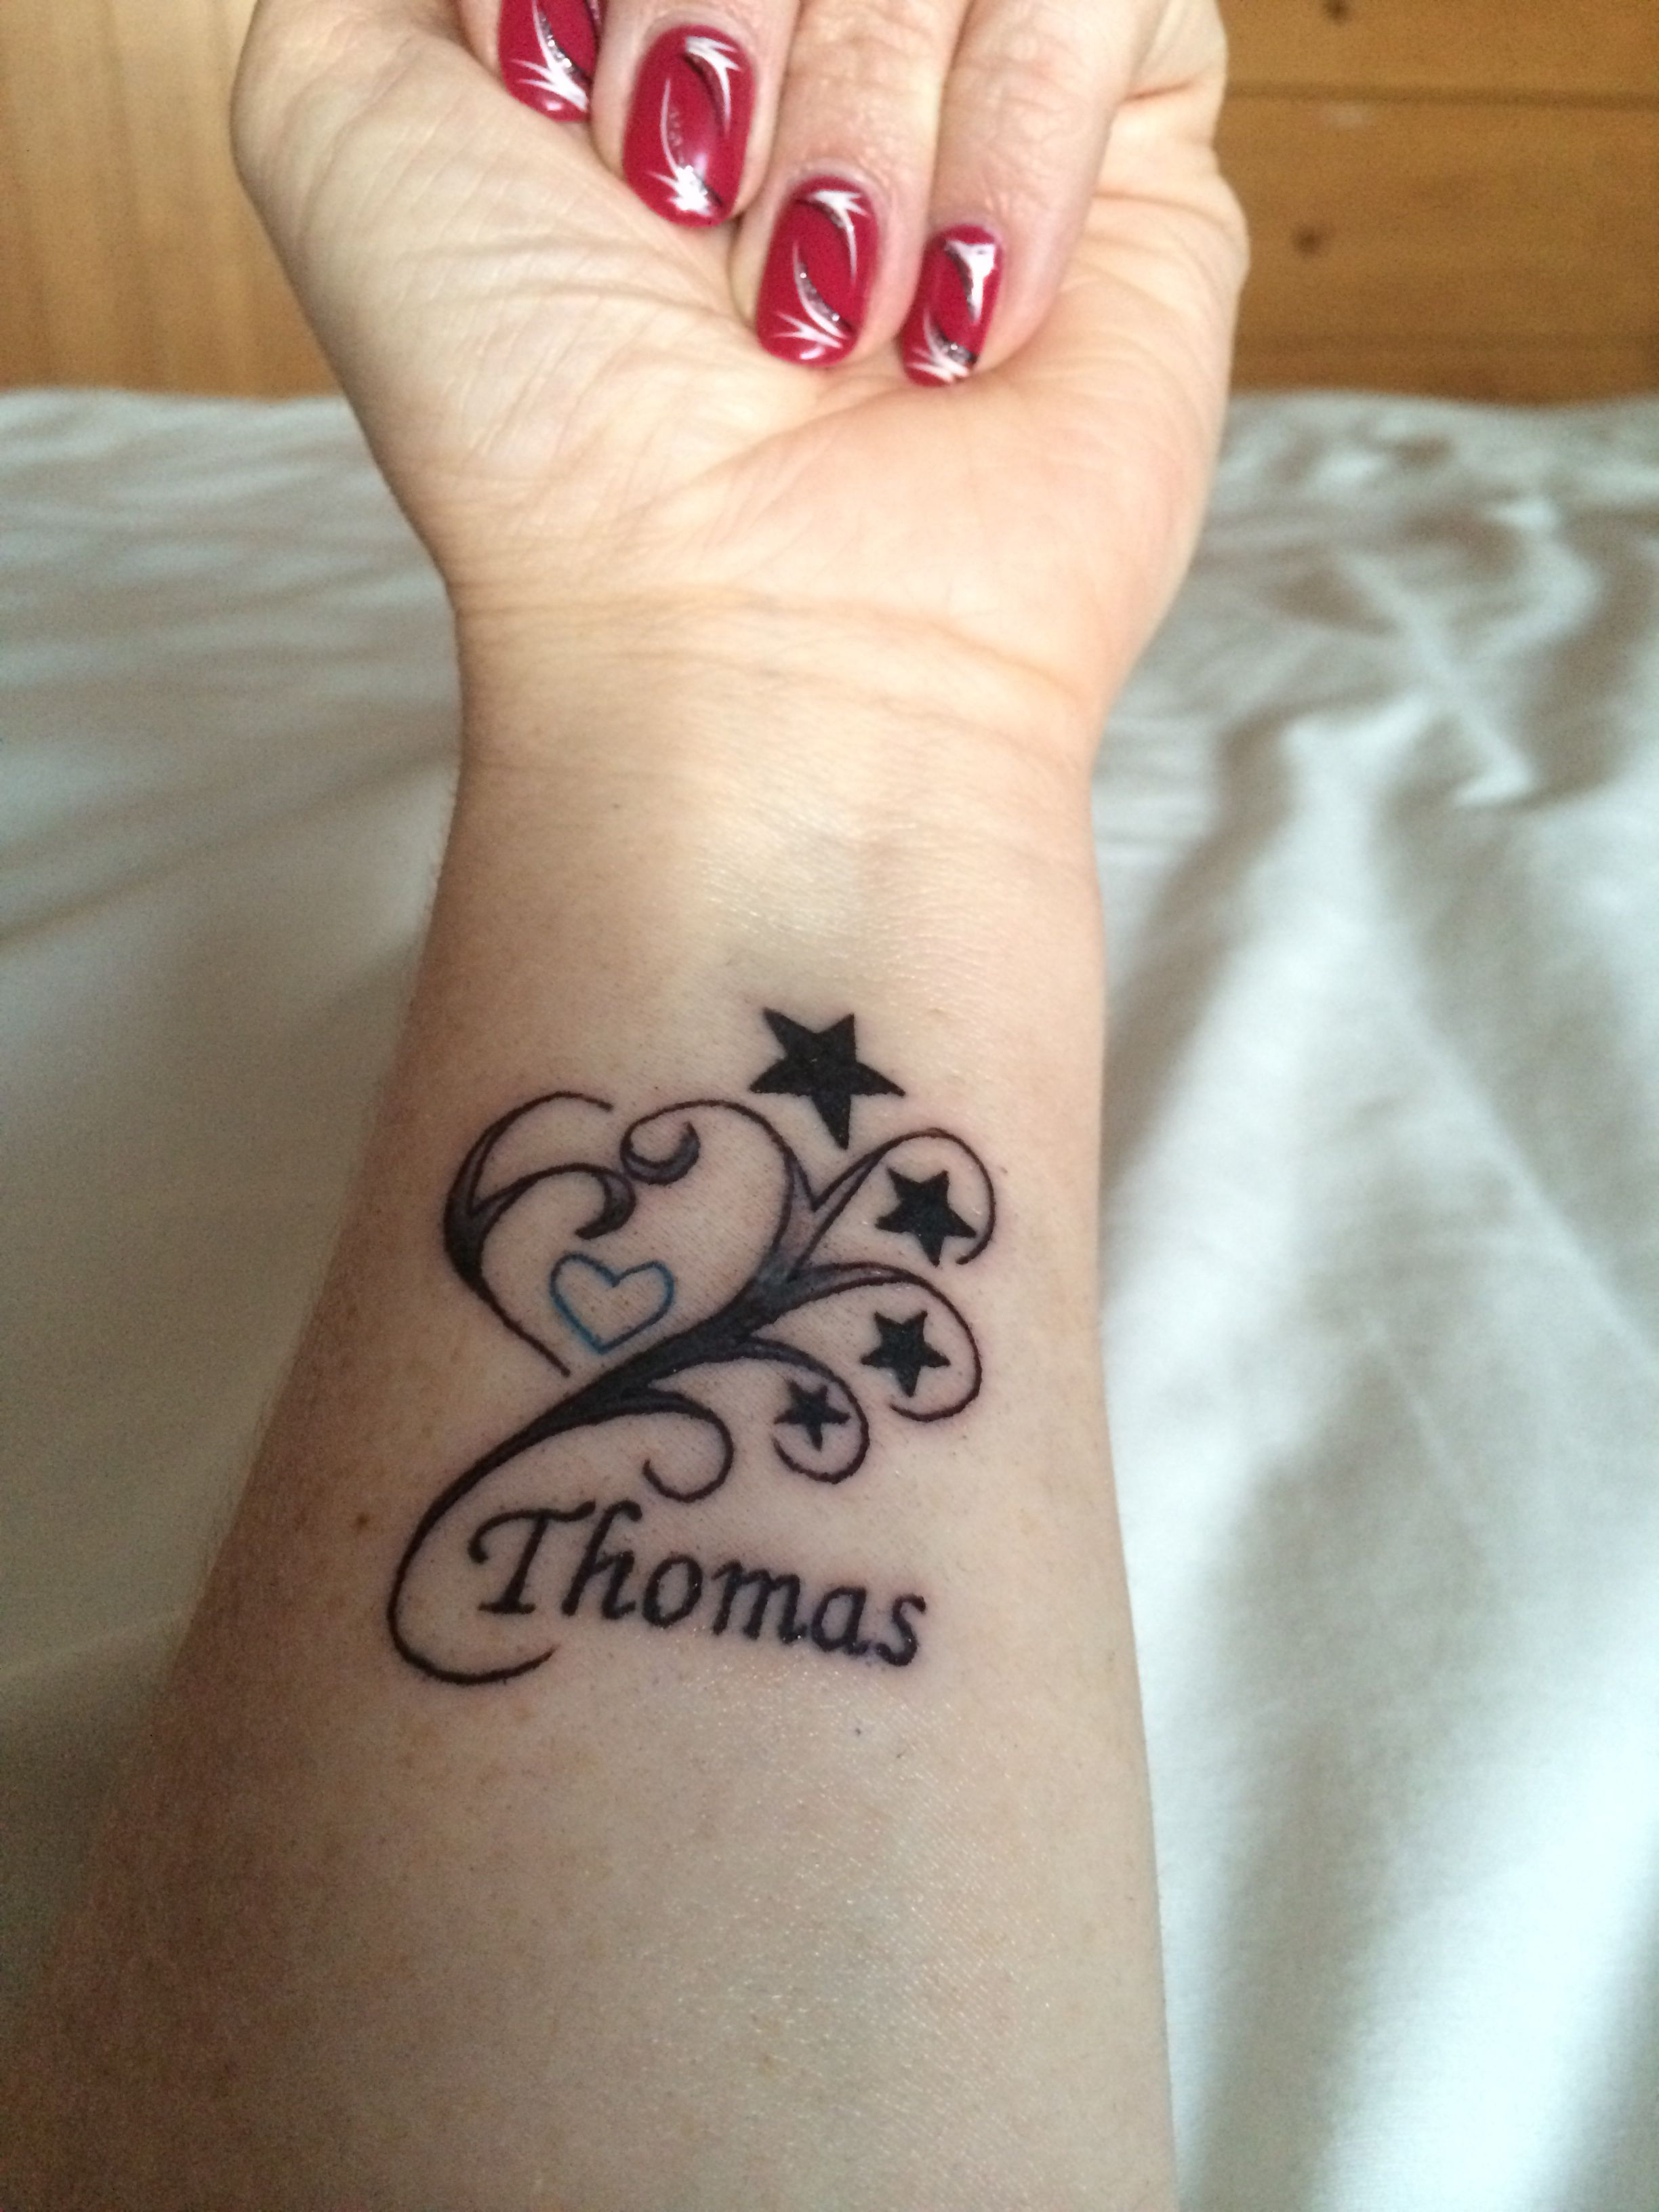 My new wrist/arm tattoo done for my son Thomas. A blue